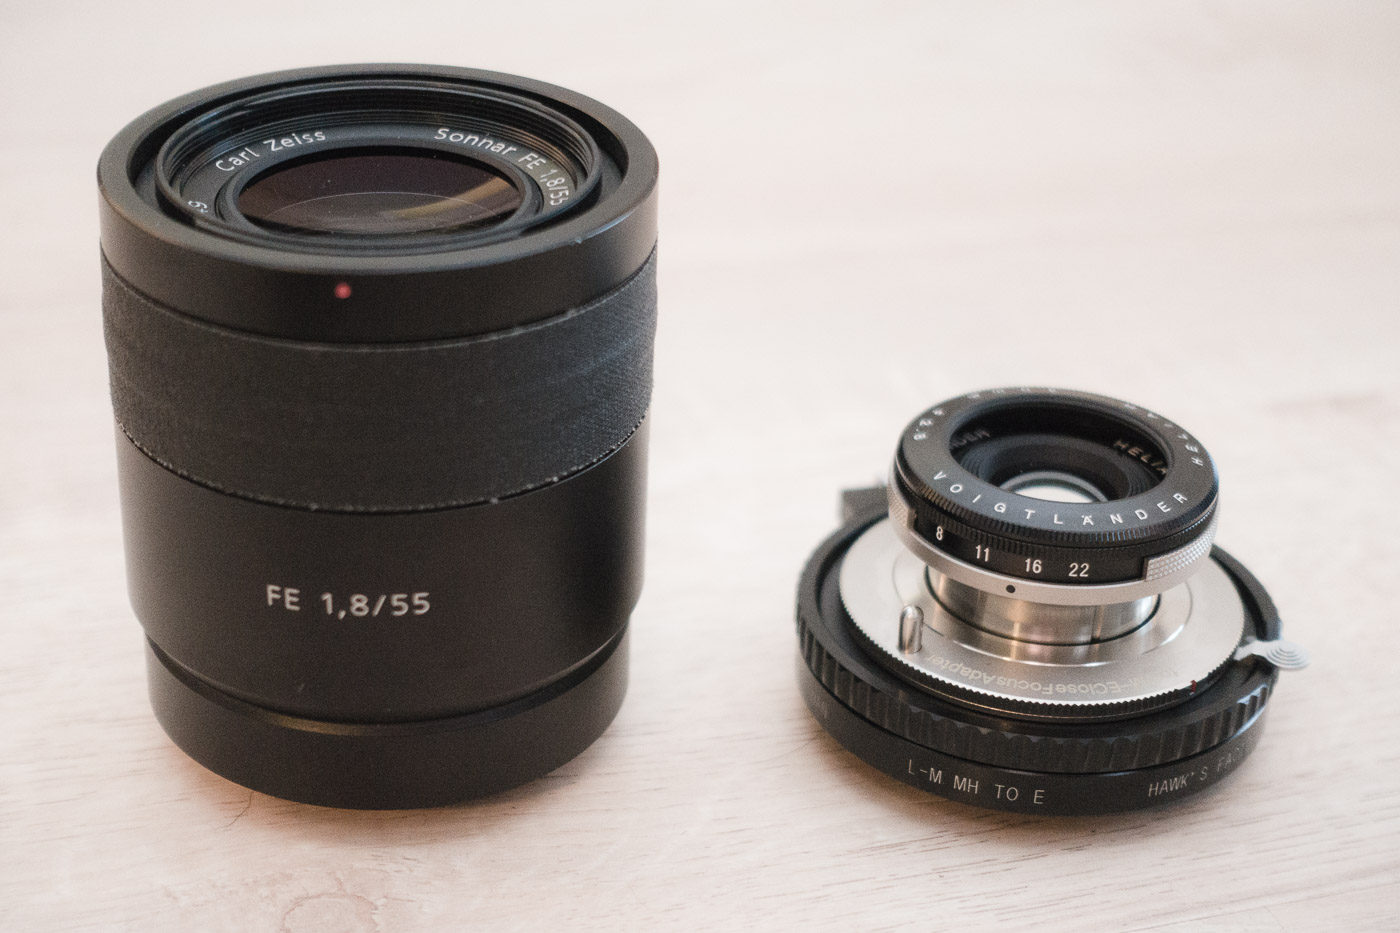 voigtlander-40mm-heliar-lens-review-3